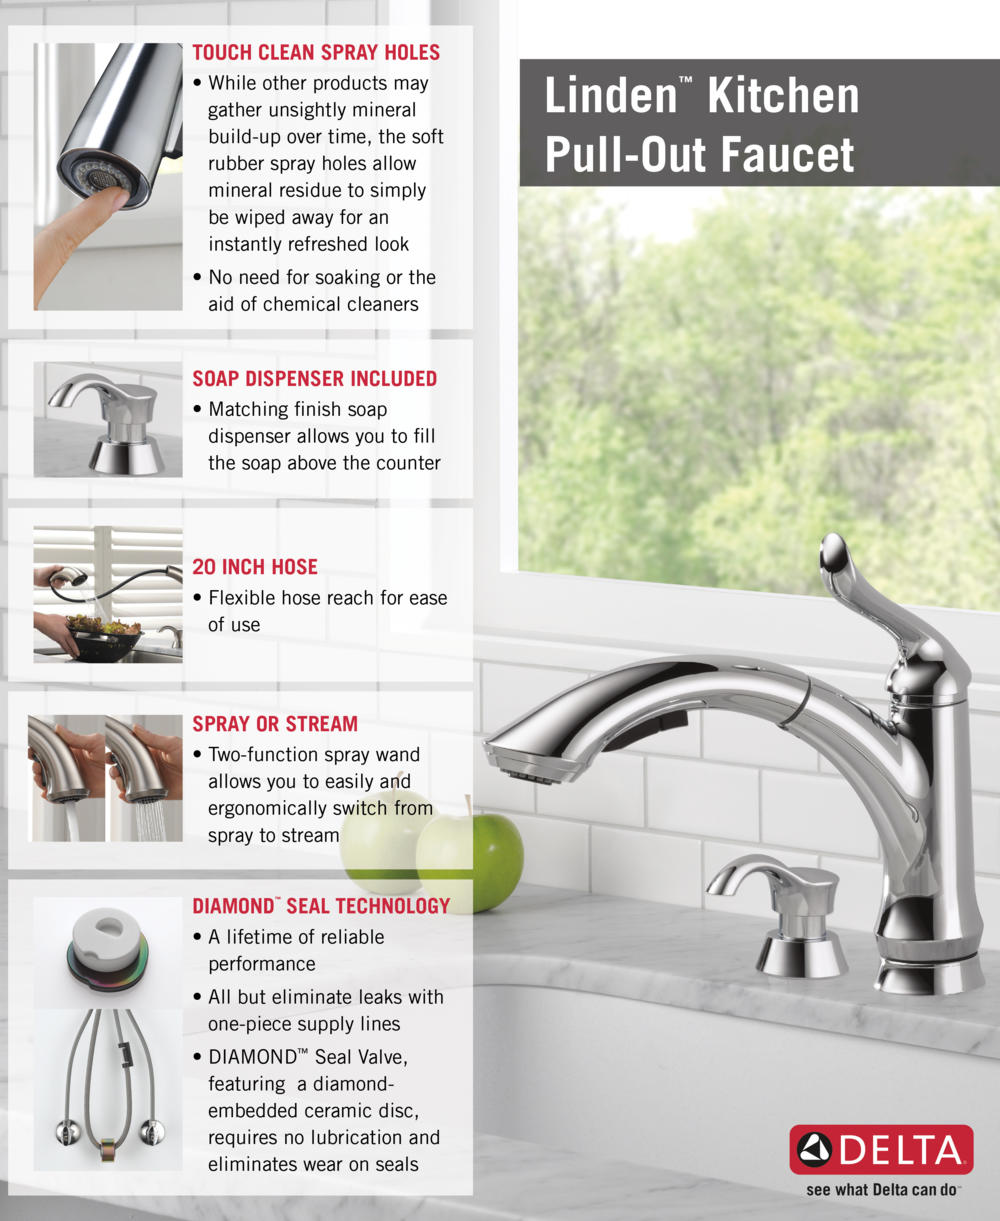 Home Depot Delta Faucet Pull-Out with Soap Dispenser Kitchen Infographic